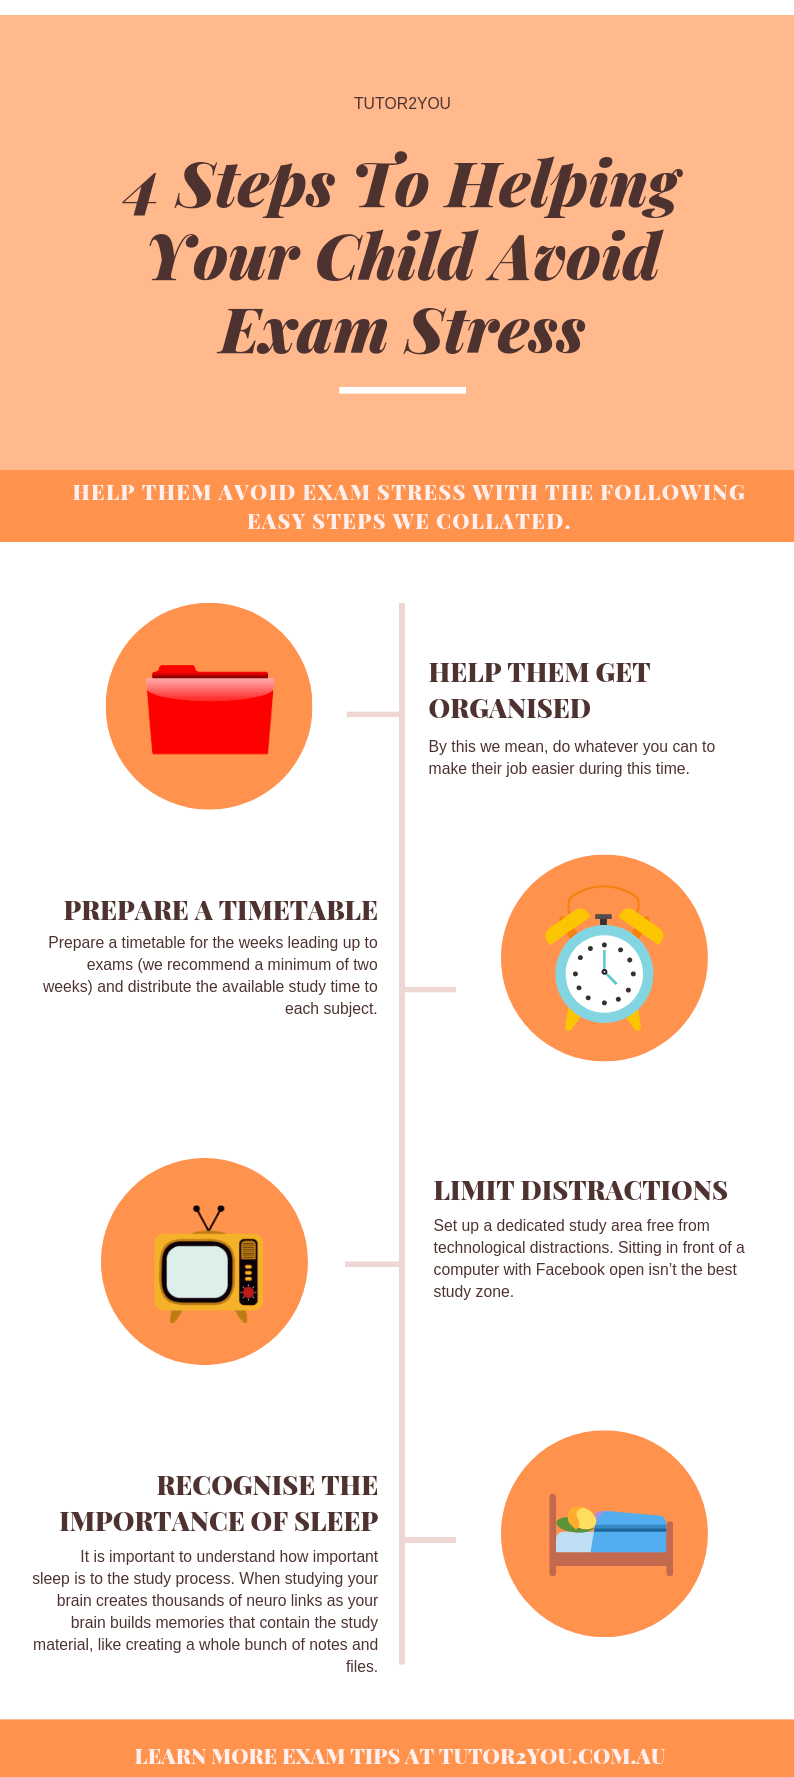 4 Steps To Helping Your Child Avoid Exam Stress - Infographic | Tutor2you